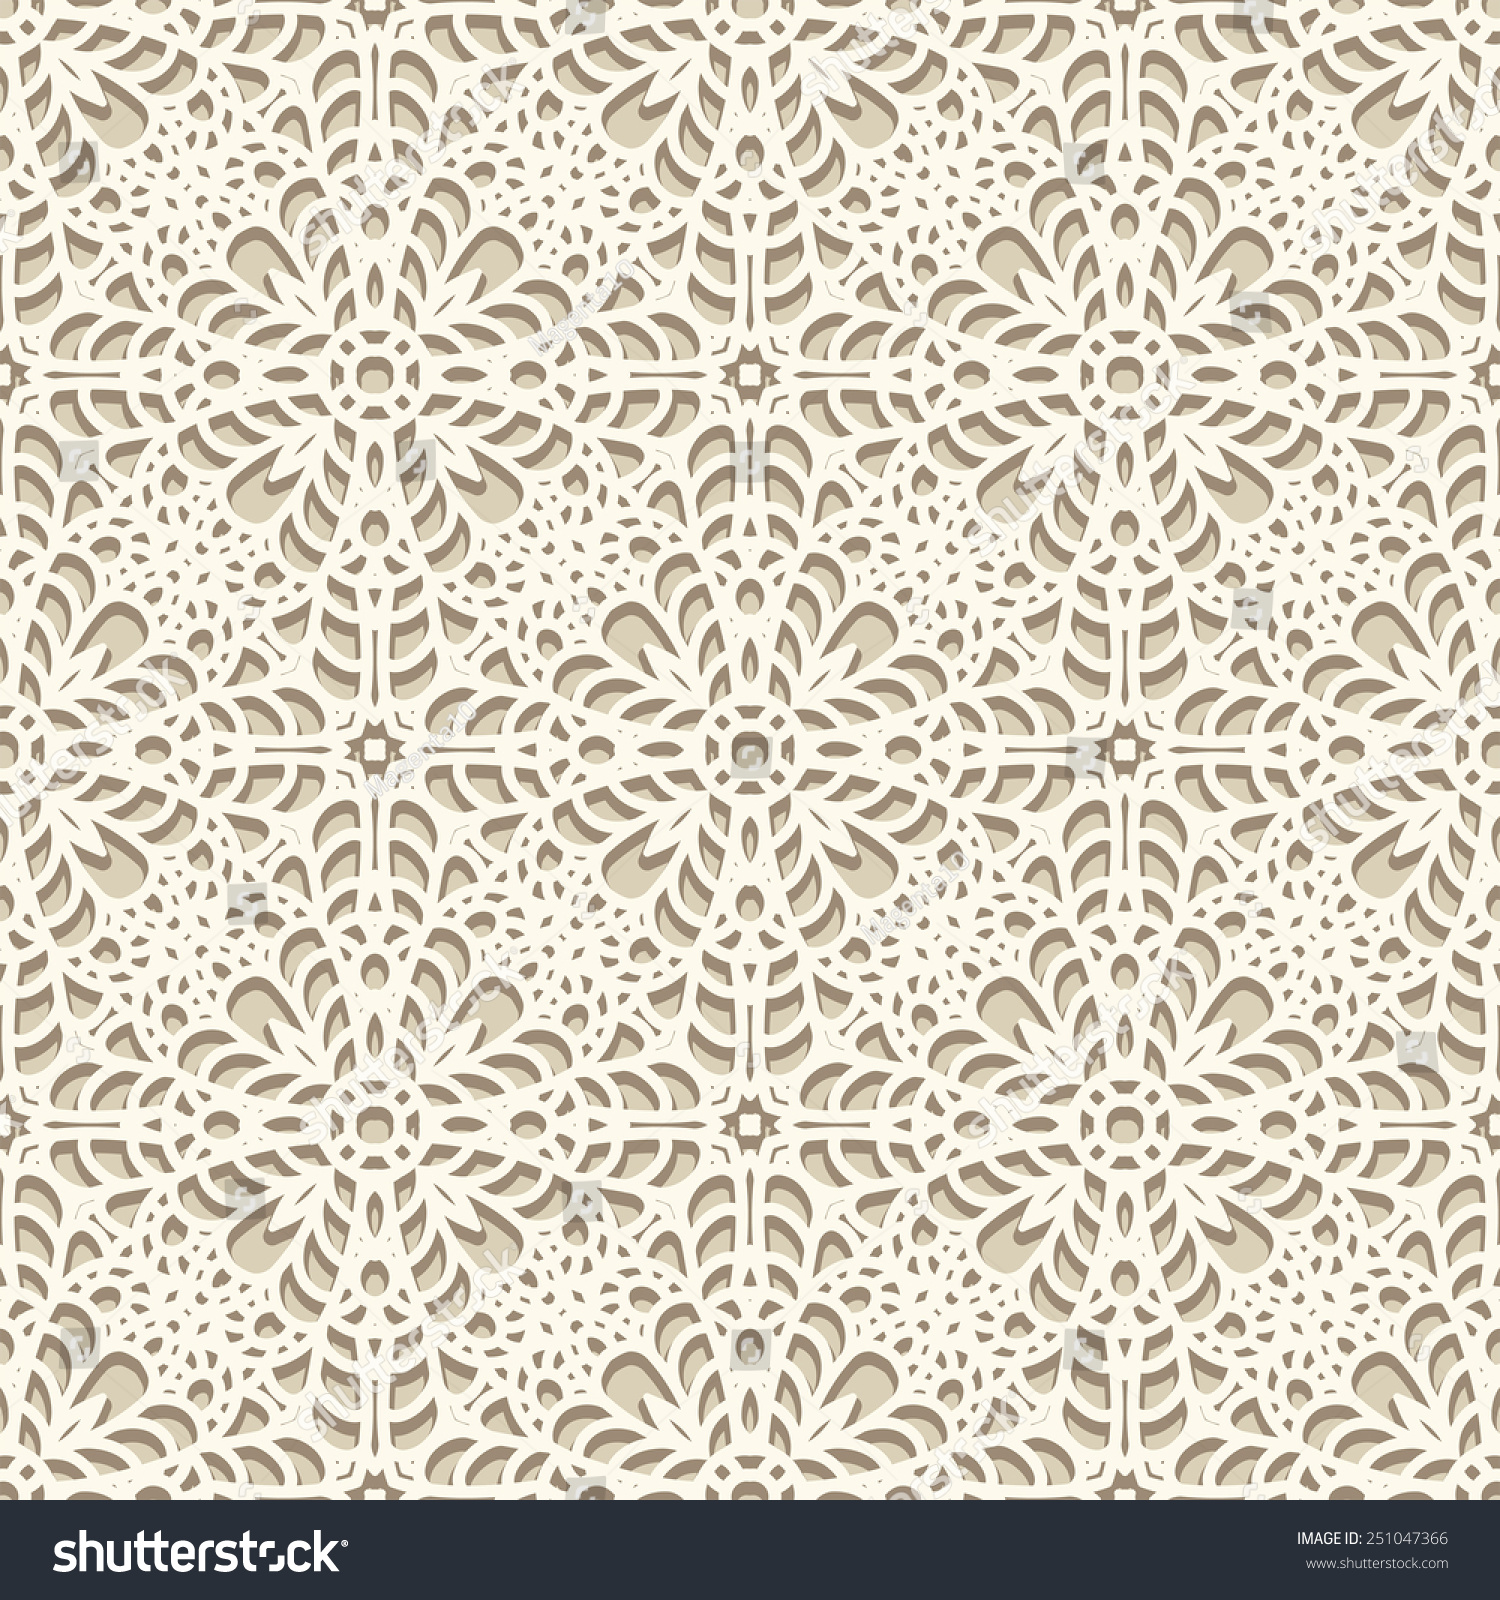 Crochet Patterns Vector : Seamless Lace Pattern, Vector Knitted Or Crochet Texture ...